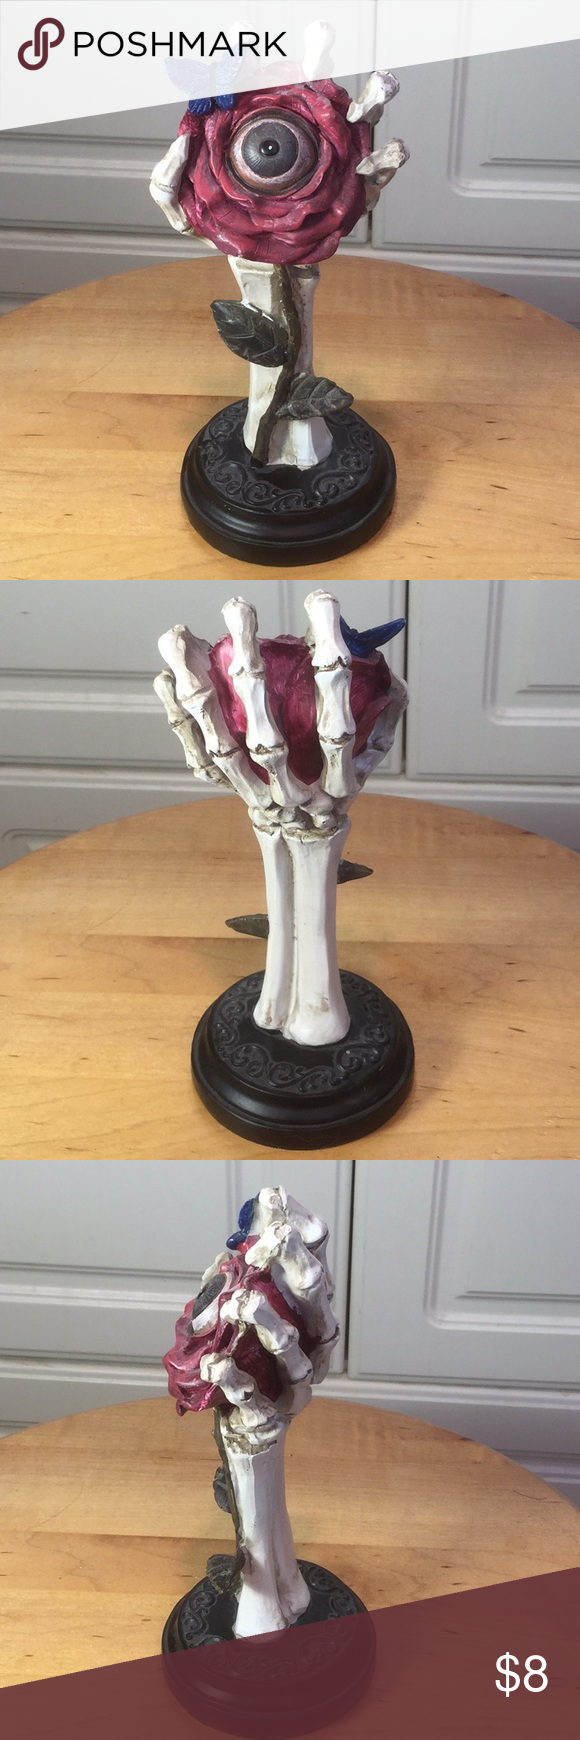 NWT 3D Skeleton hand & rose with eye sculpture Hand